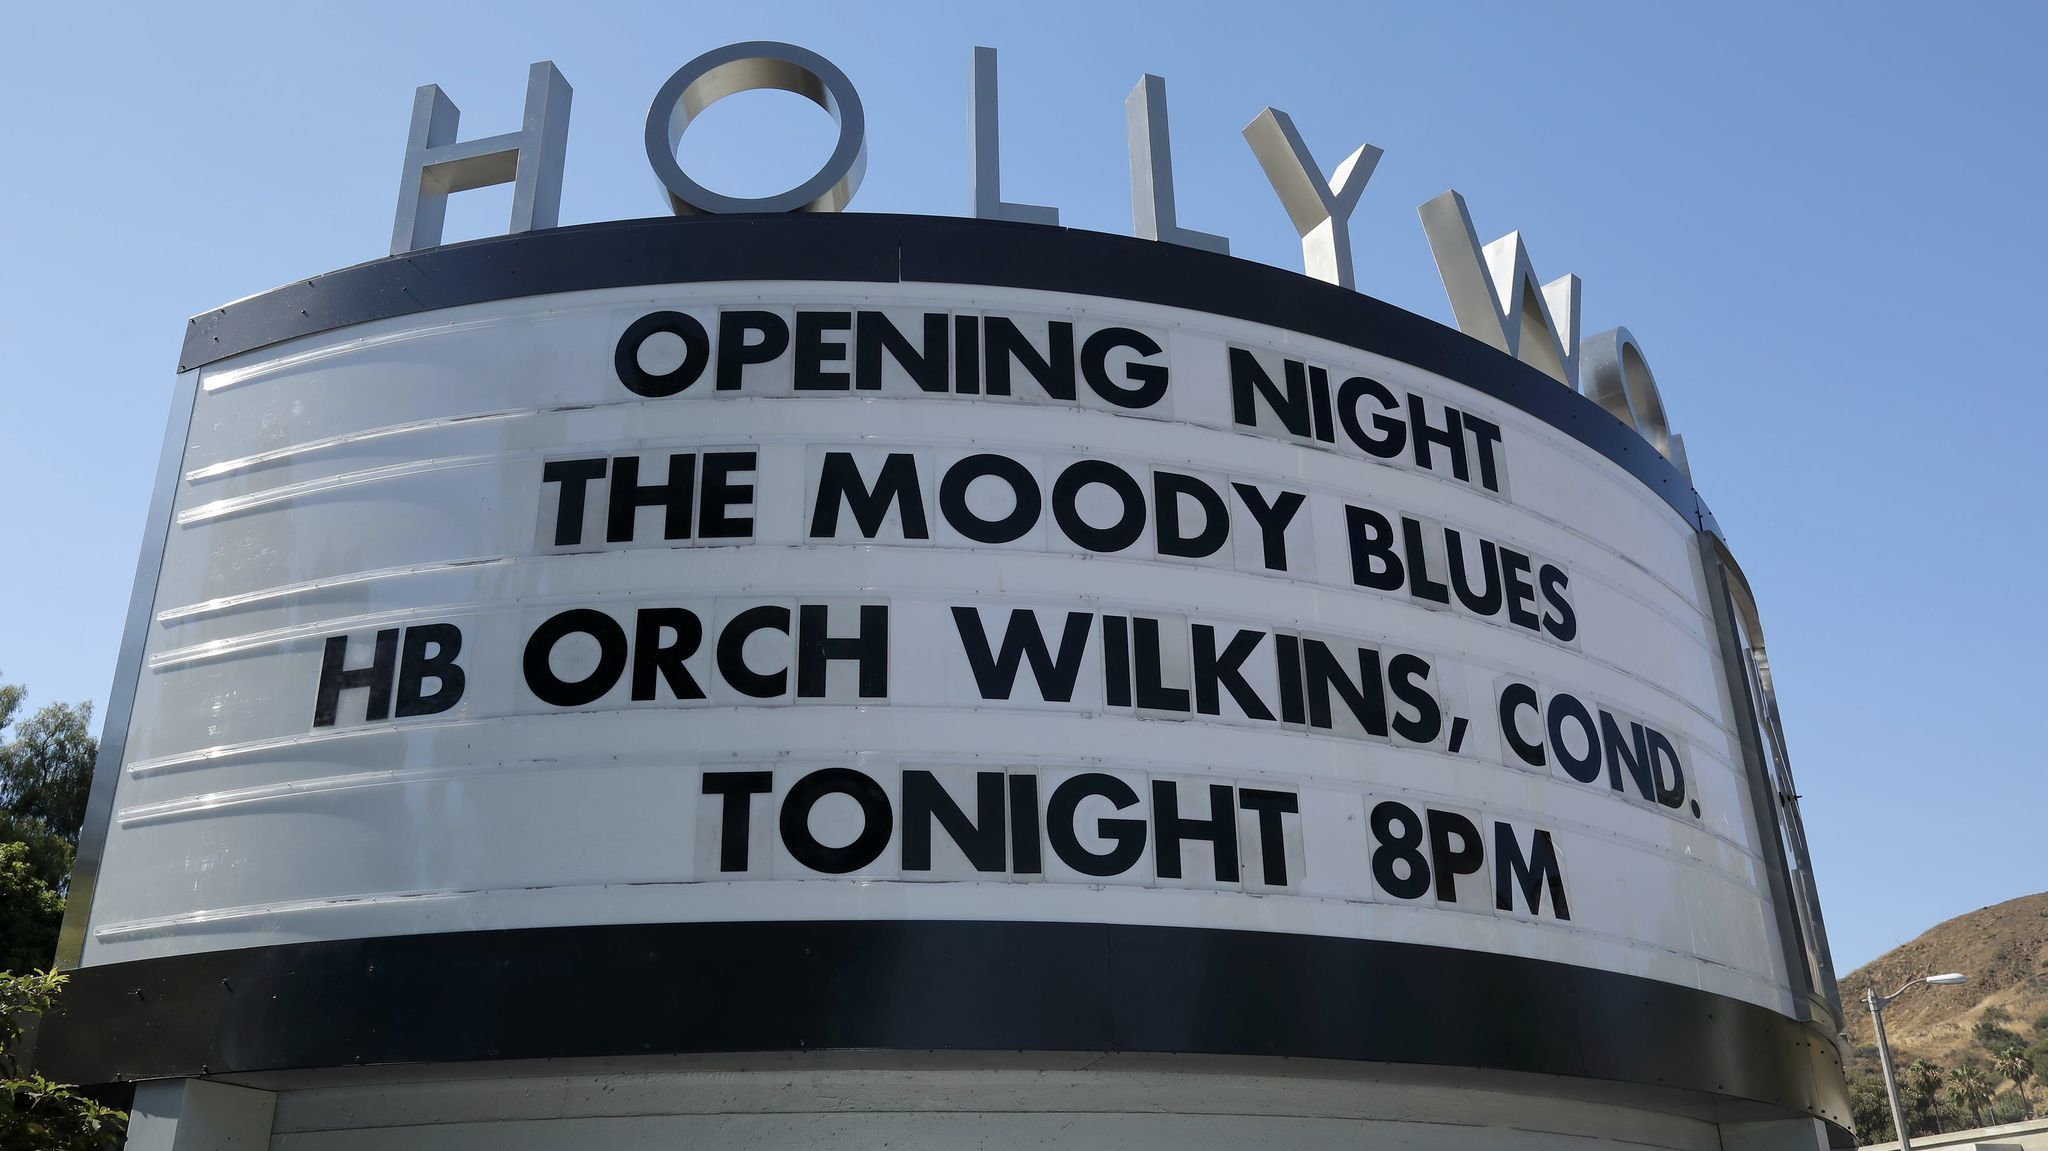 It's that time again. It's the opening night for the new Hollywood Bowl season.